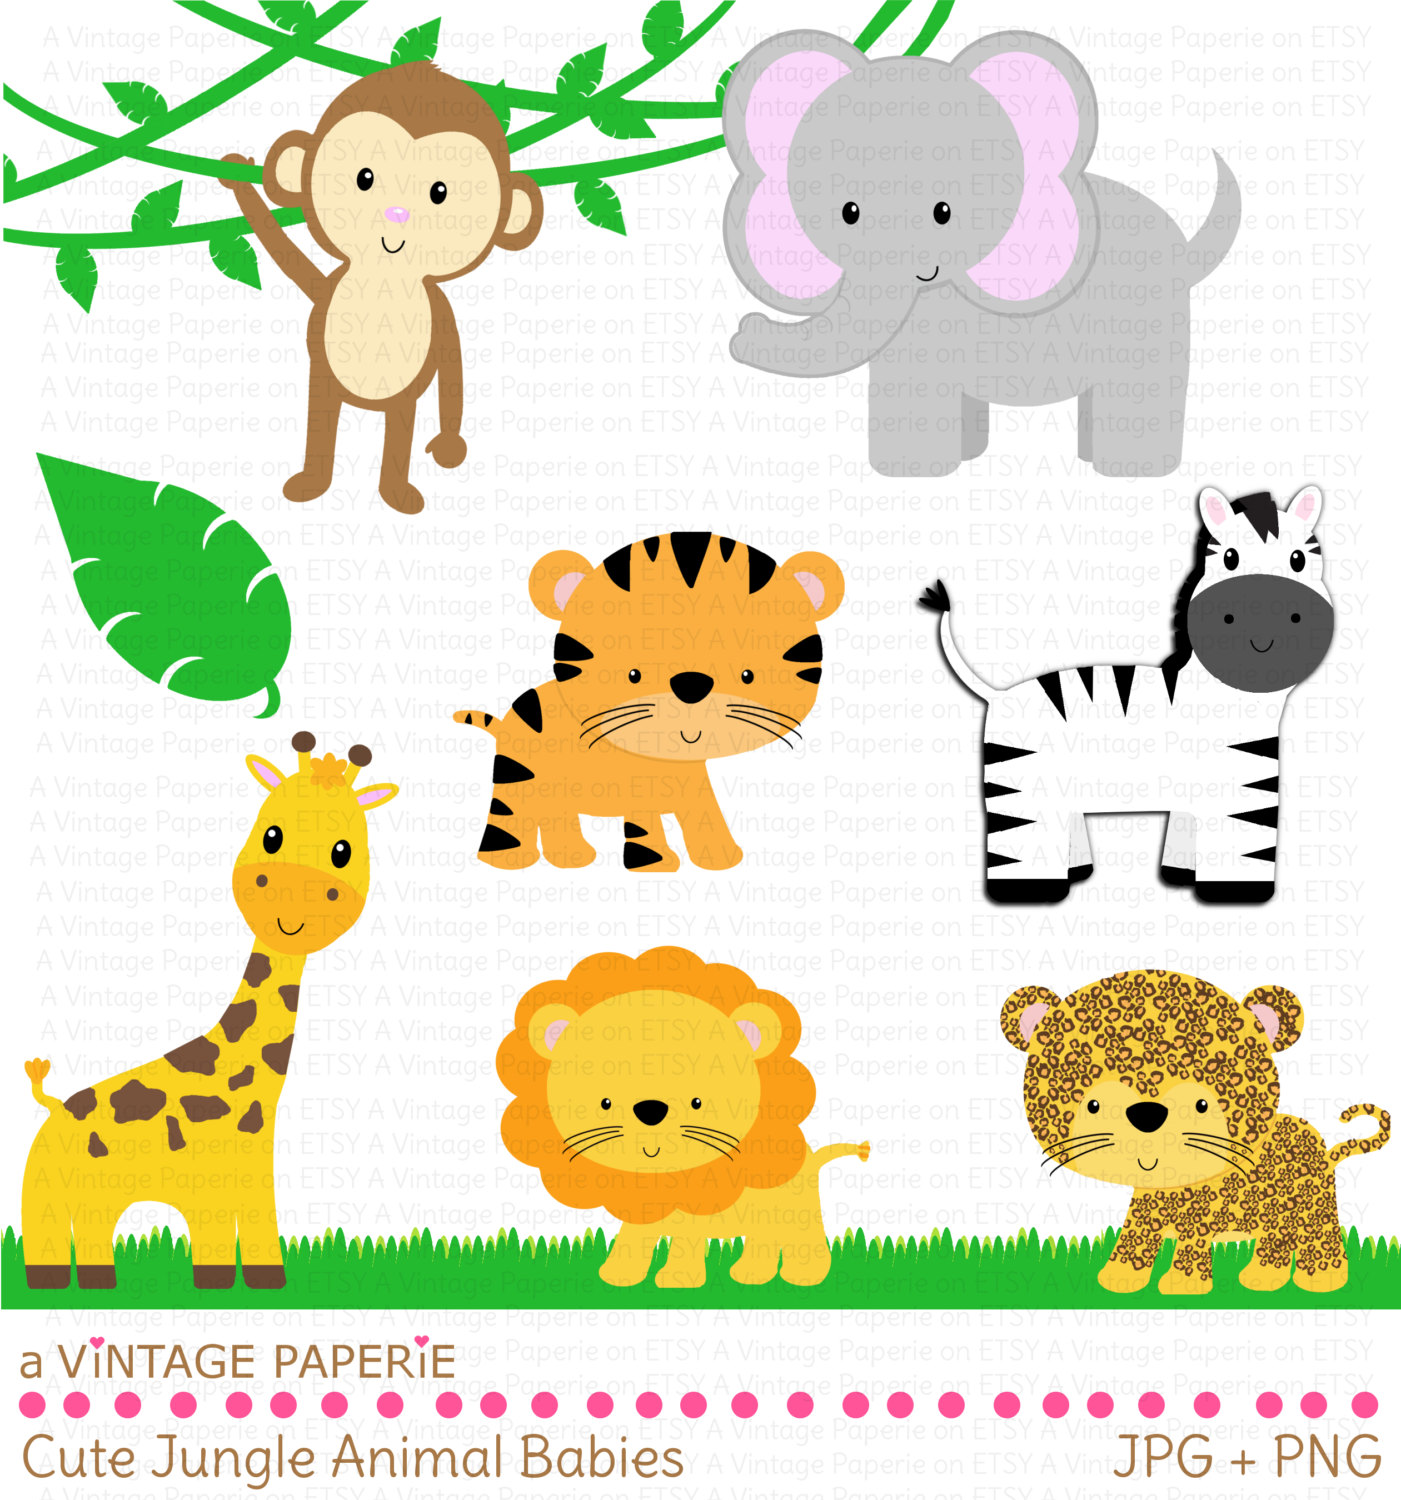 Animals cute clipart for printables svg freeuse library Animals cute clipart for printables - ClipartFest svg freeuse library